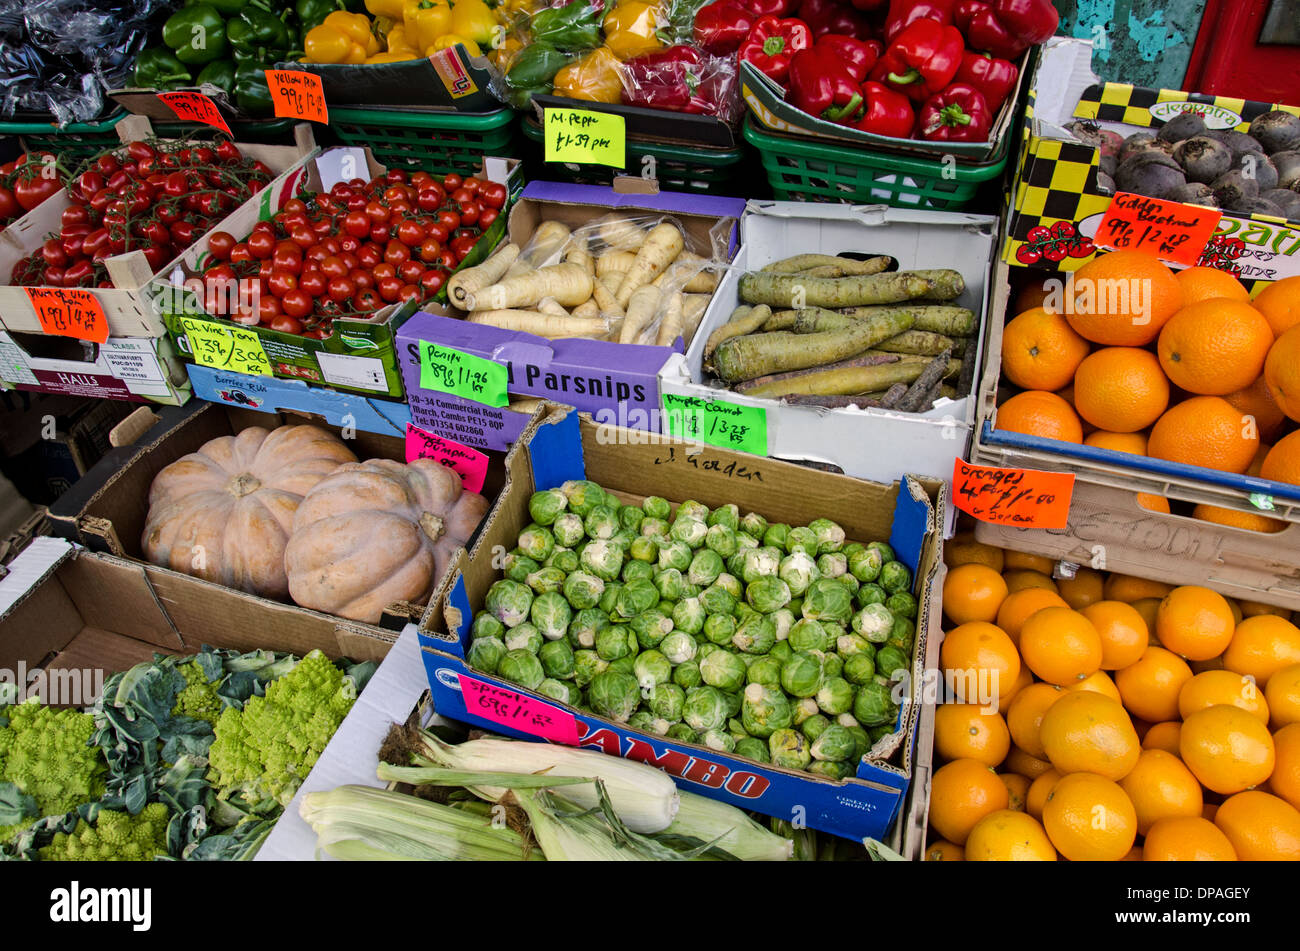 Fruit and vegetables on display outside a greengrocers in Marchmont, Edinburgh, Scotland. - Stock Image